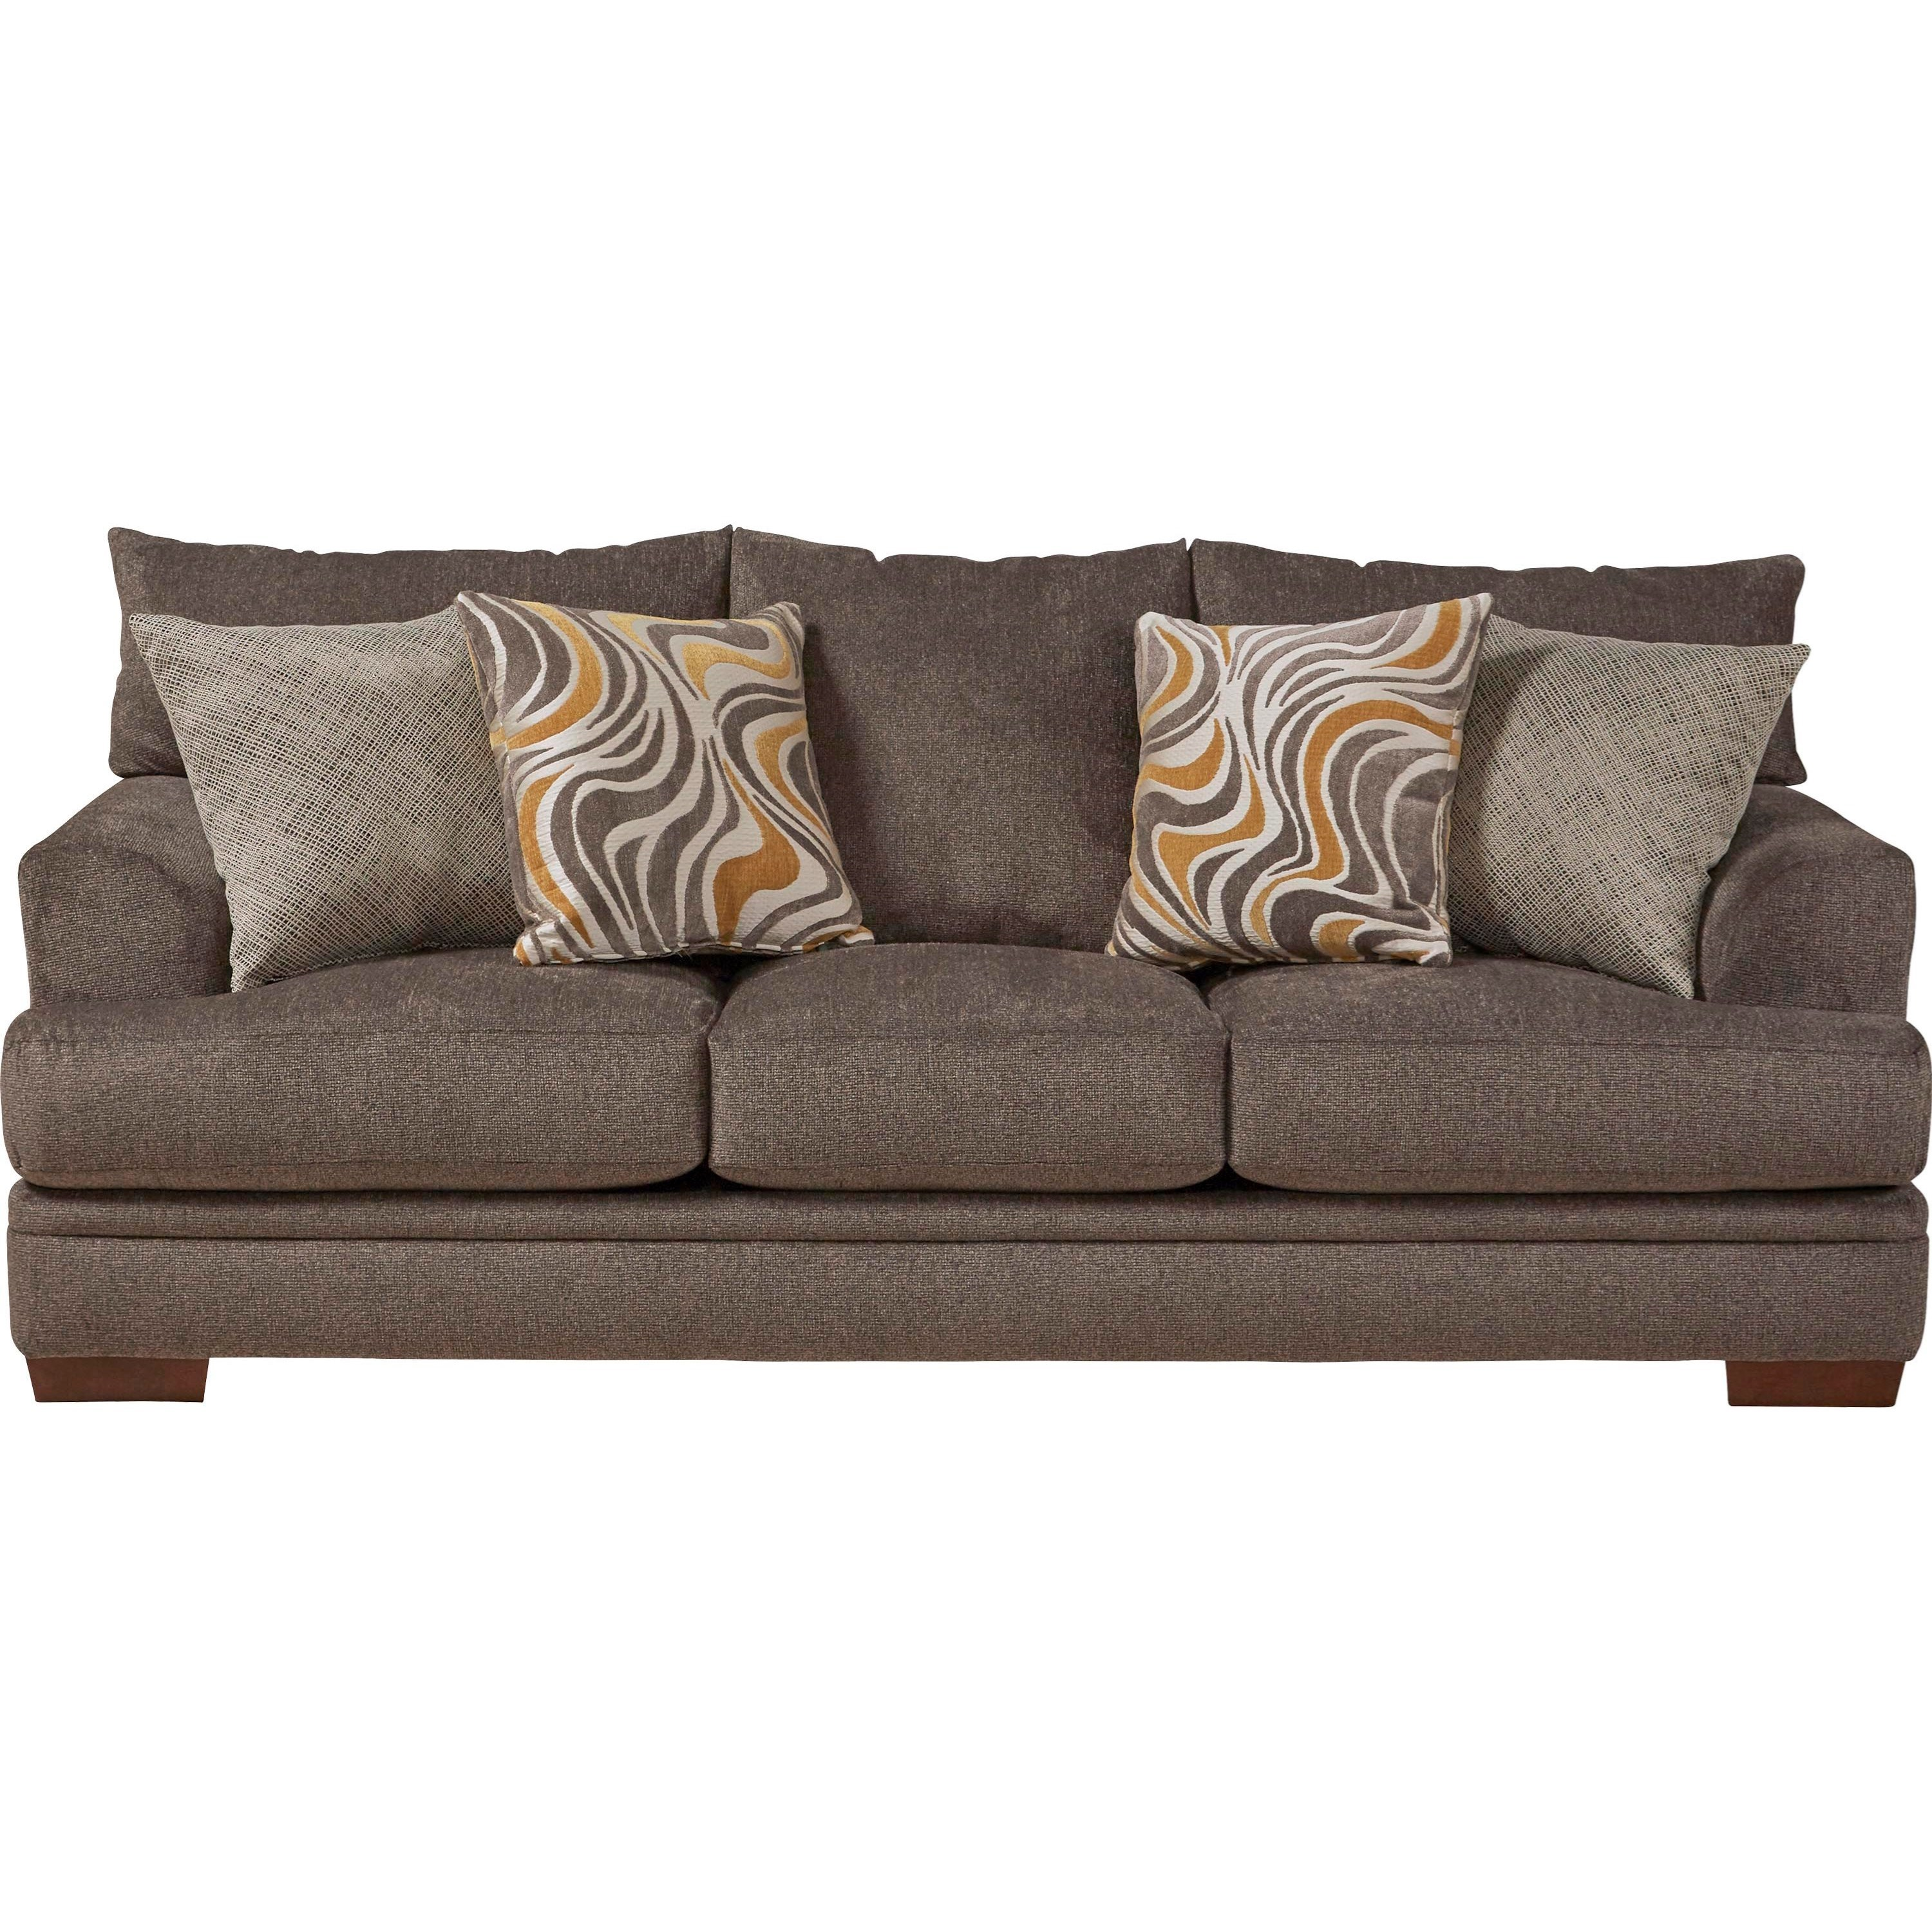 Jackson Furniture Crompton Sofa with Casual Style - Item Number: 4462-03-2000-88